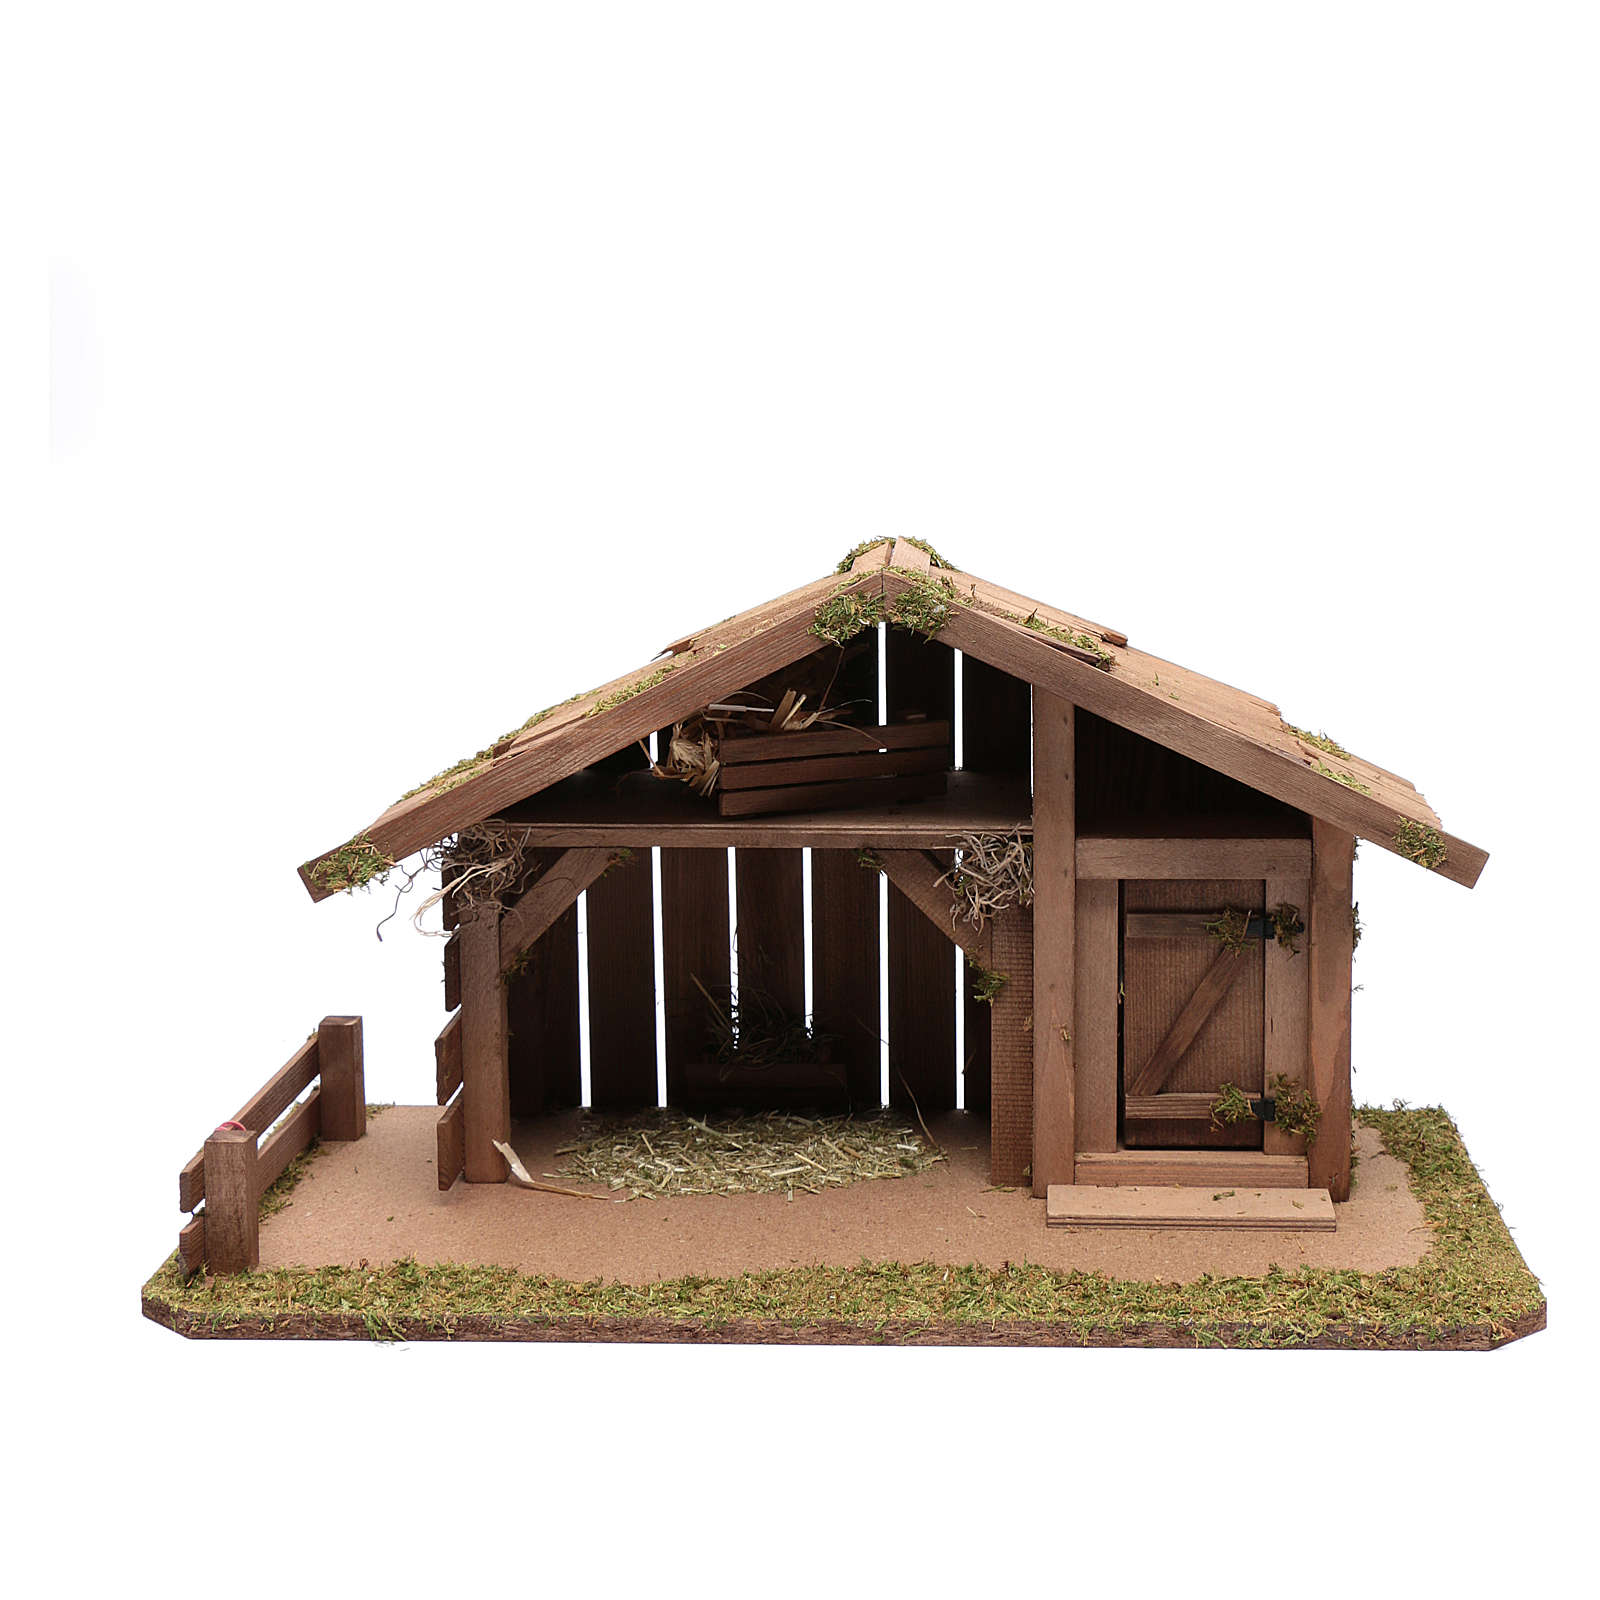 Nativity scene accessory 30x55x30 cm stable suitable for 12 cm statues 4